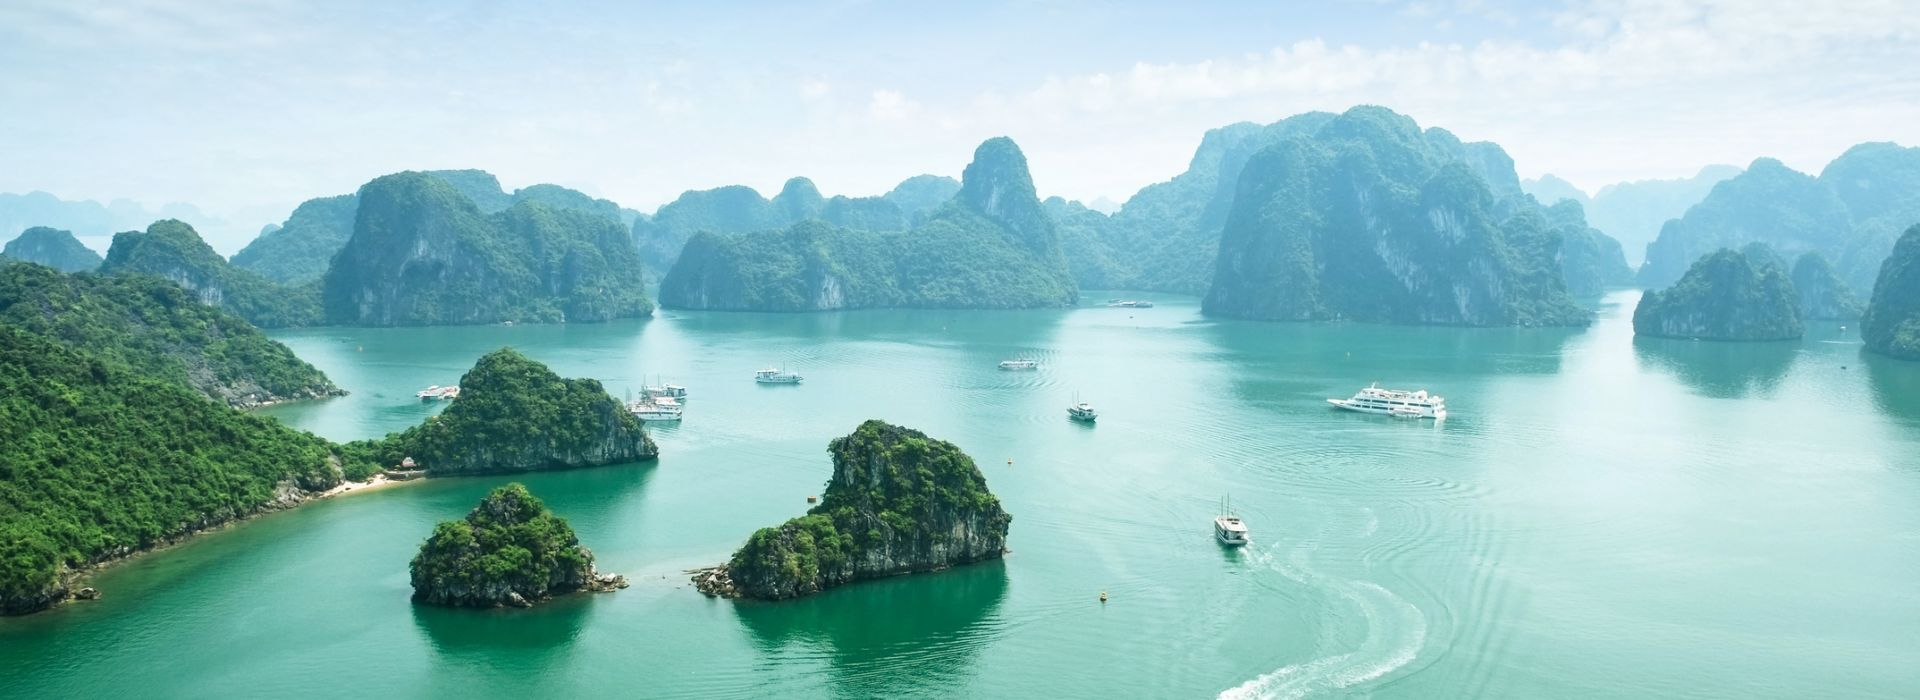 Shopping and markets Tours in Vietnam